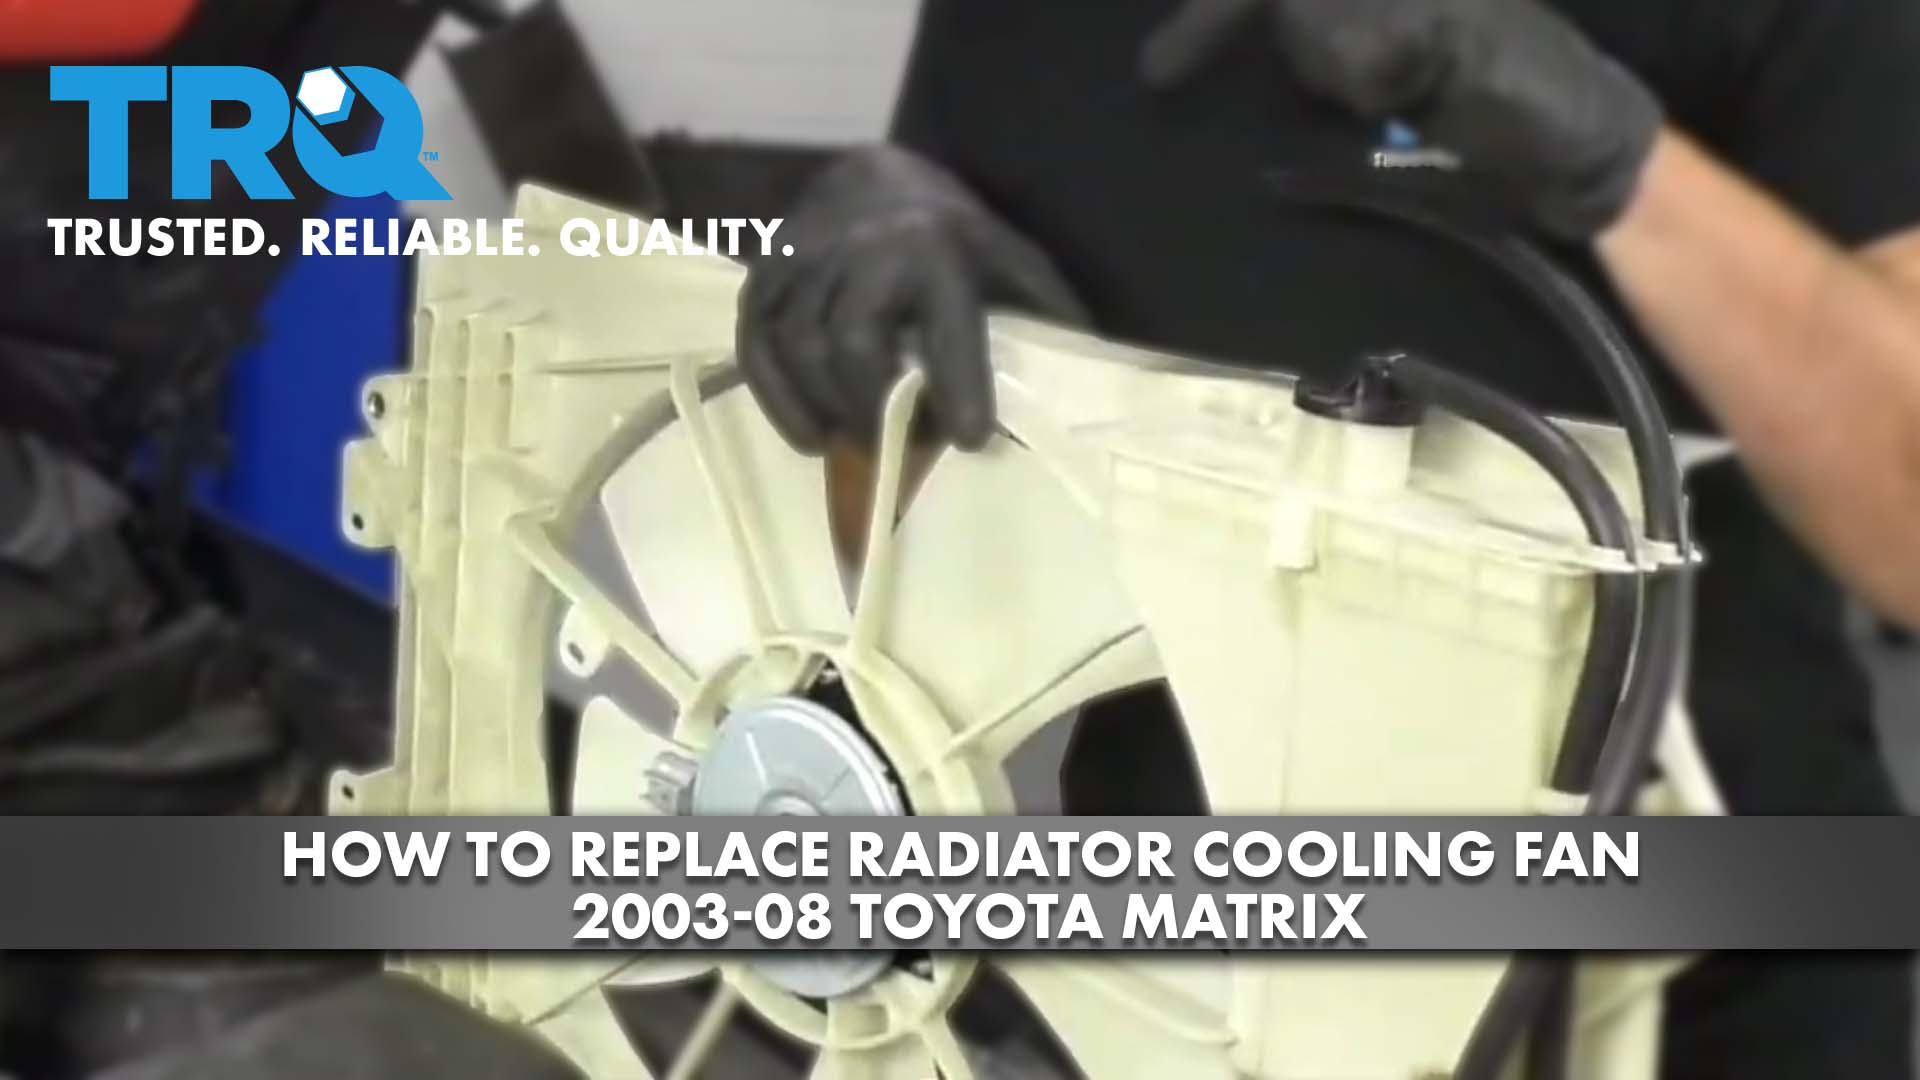 How to Replace Radiator Cooling Fan 2003-08 Toyota Matrix